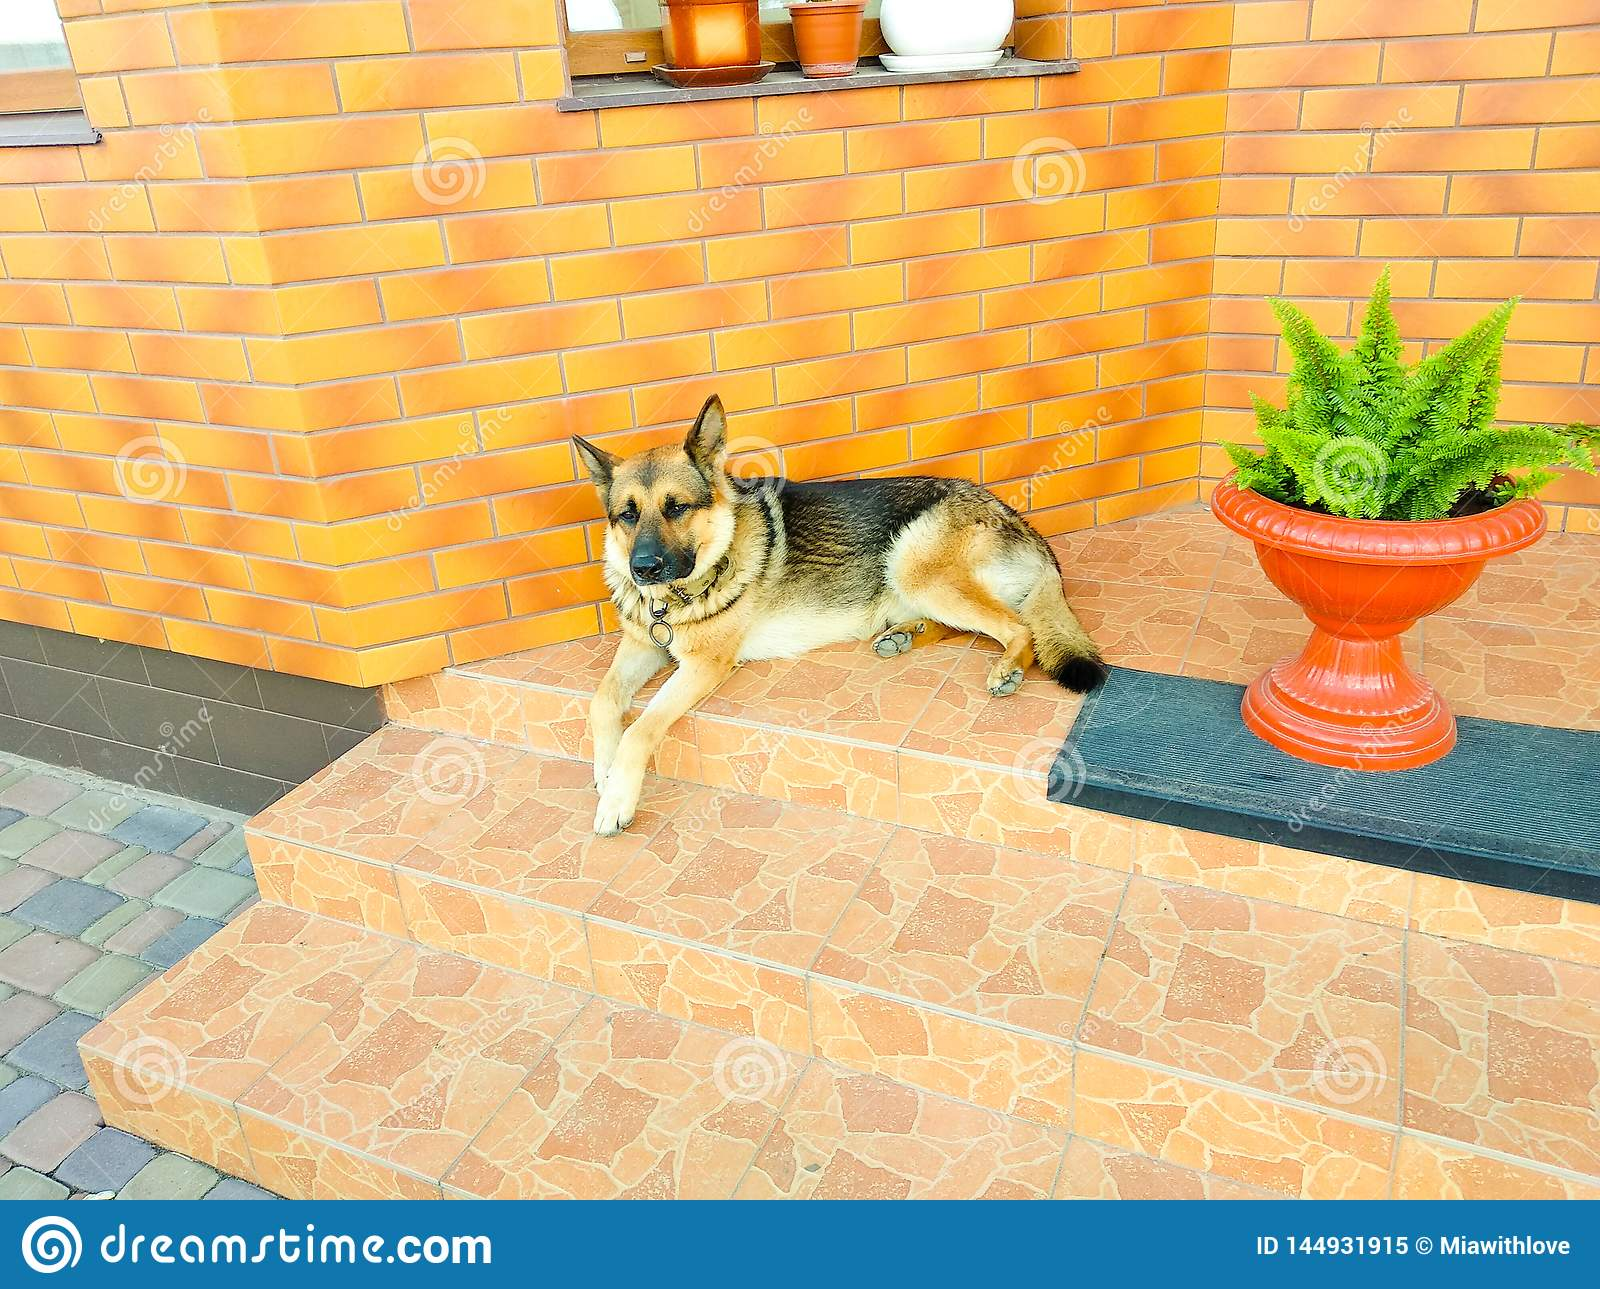 German shepherd dog lying on the stairs guards a private house on a sunny day